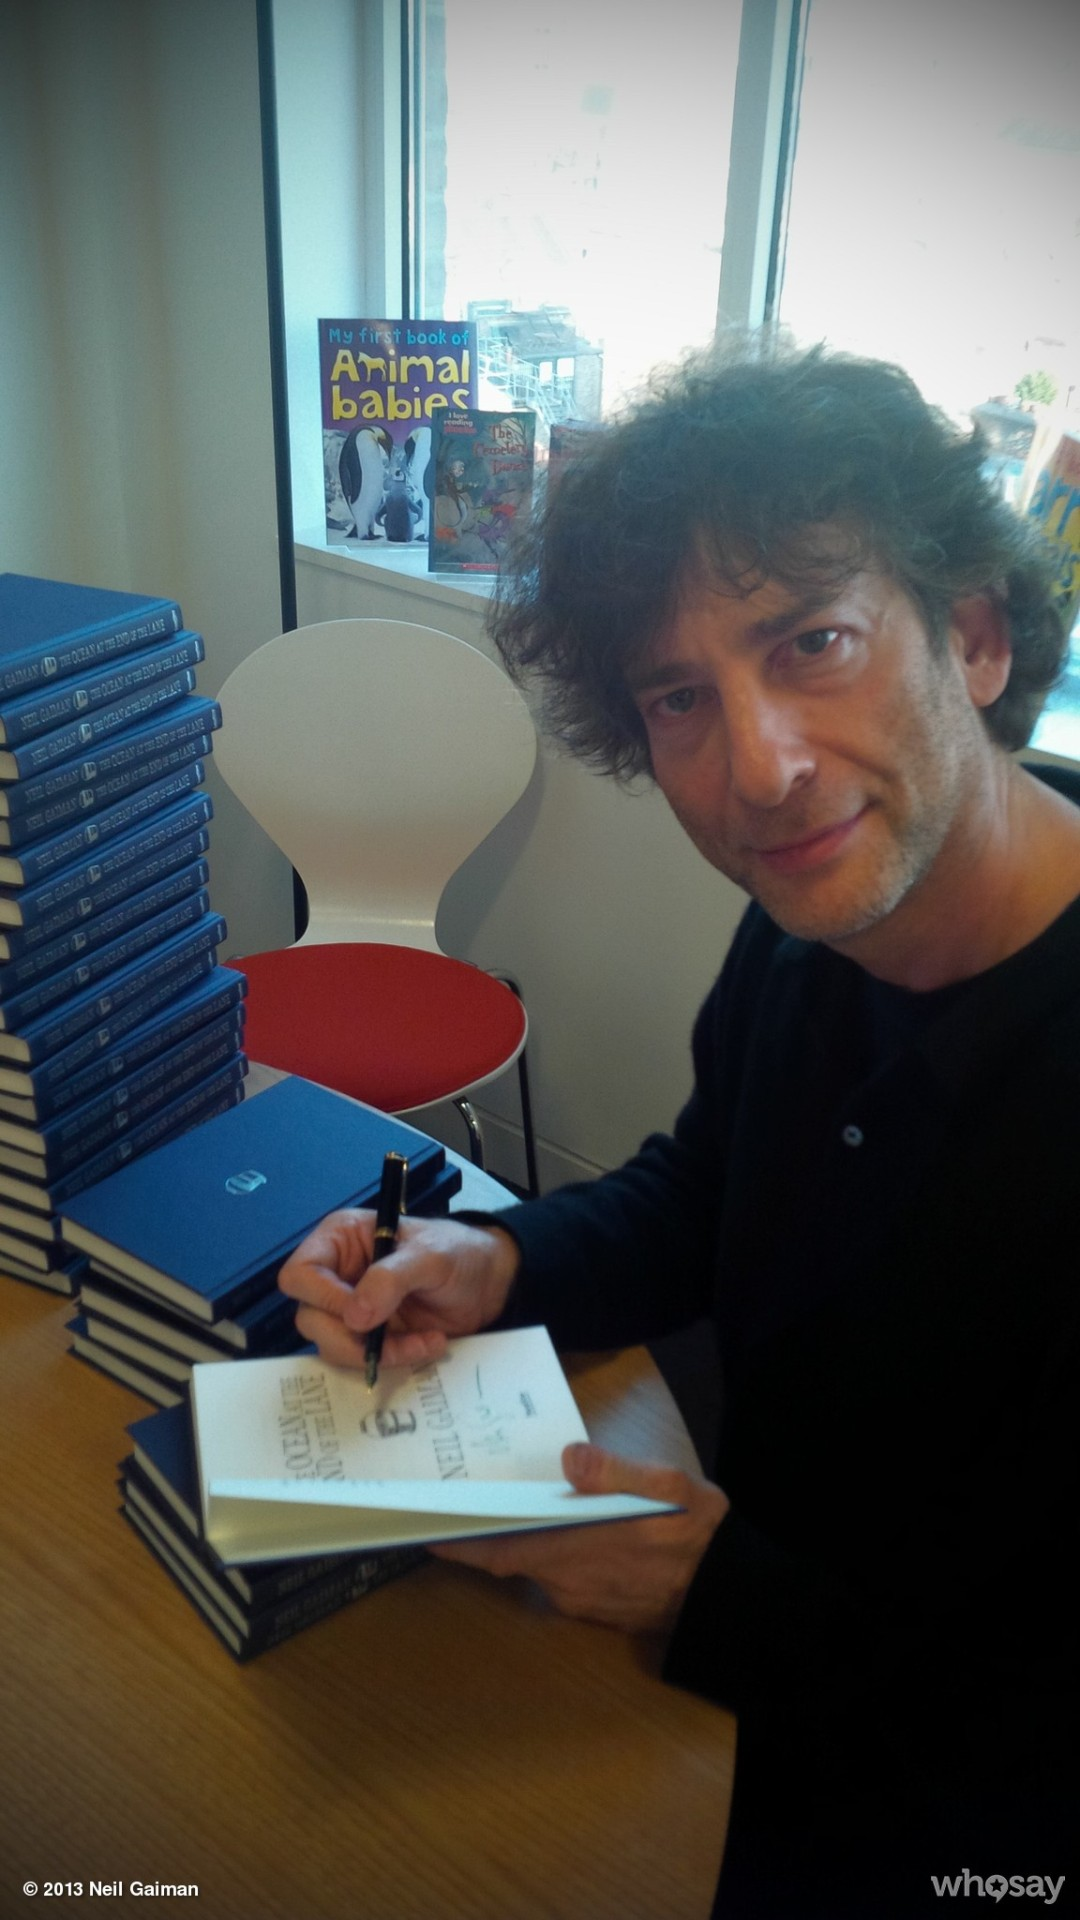 neil-gaiman:  Look! I'm signing them… View more Neil Gaiman on WhoSay